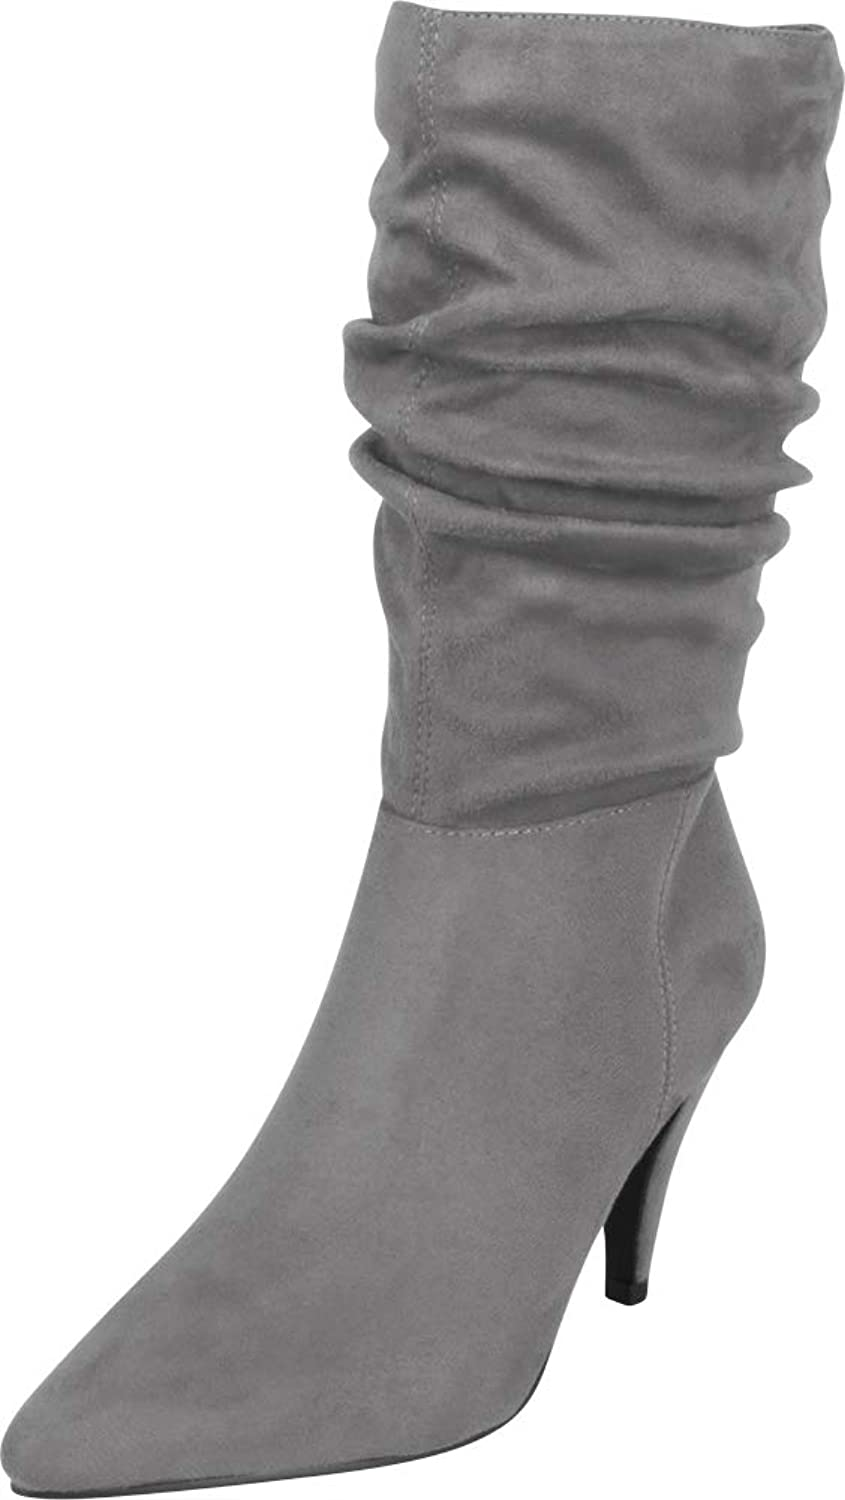 Cambridge Select Women's Pointed Toe Ruched Slouch Mid Heel Mid-Calf Boot